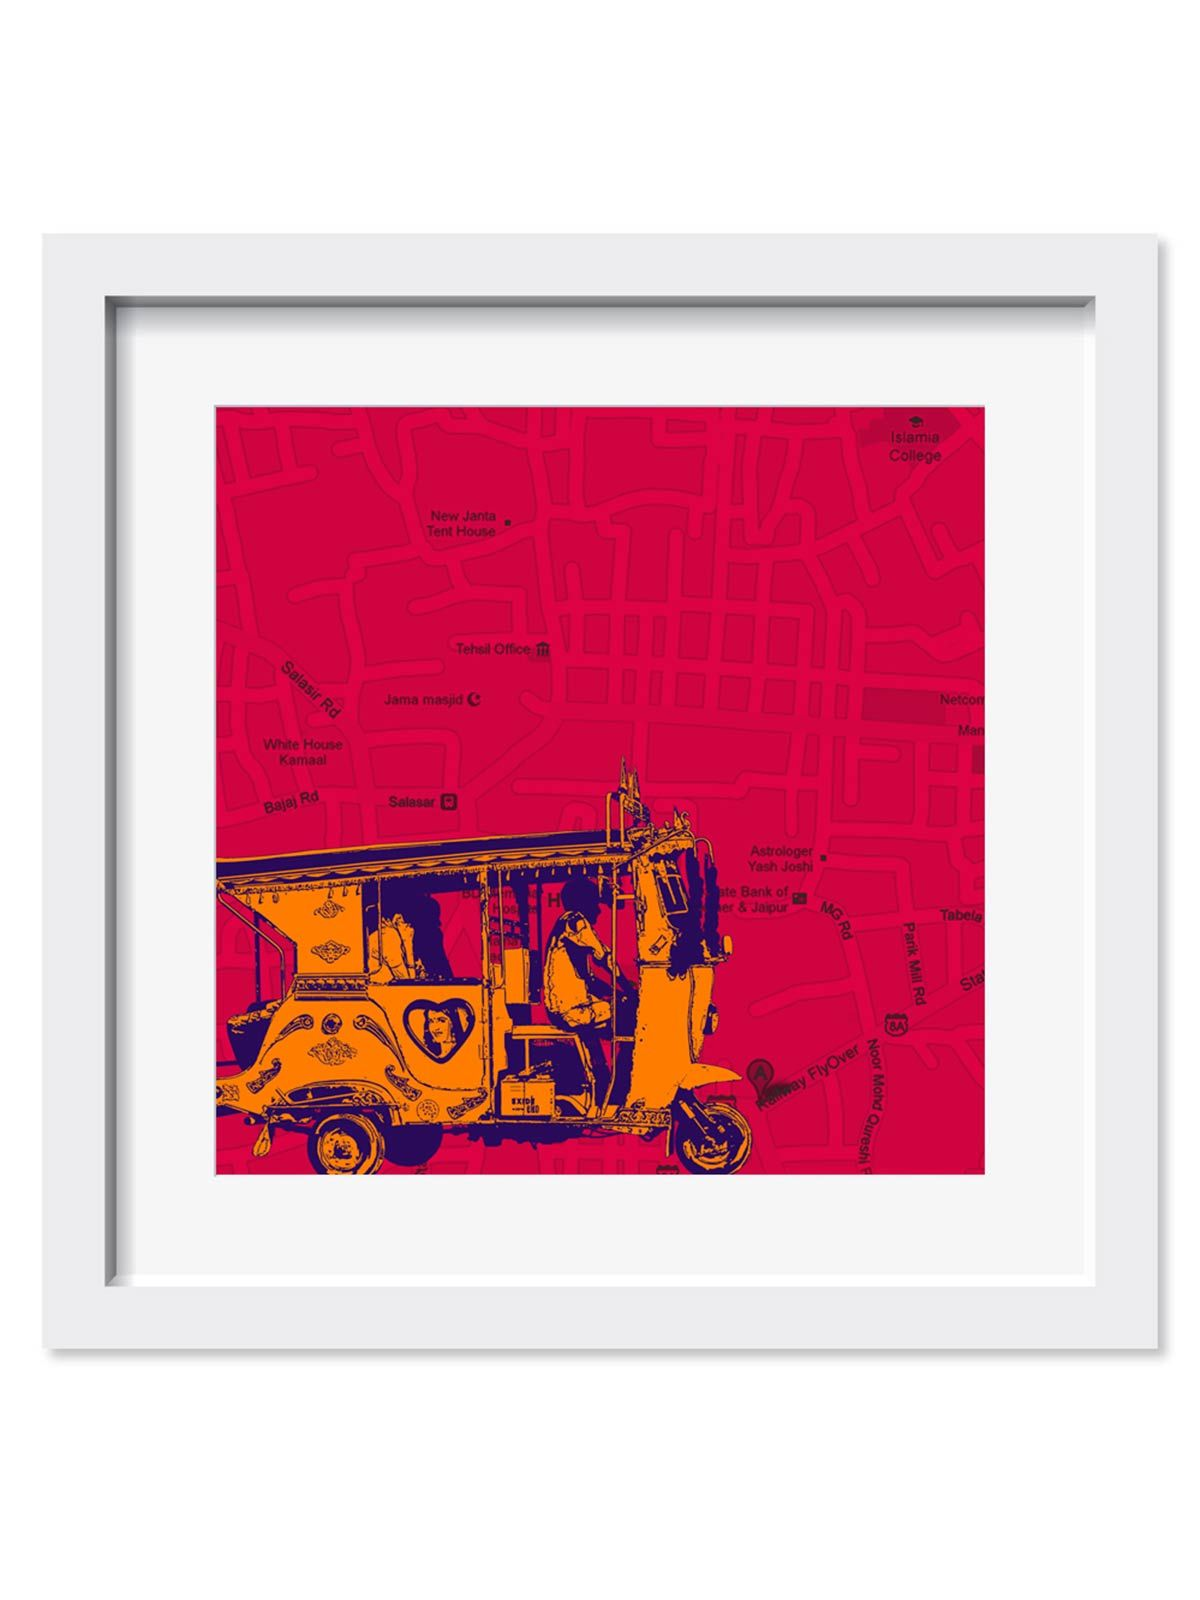 Orange Taxi on Road Art Print - 18X18 Inches